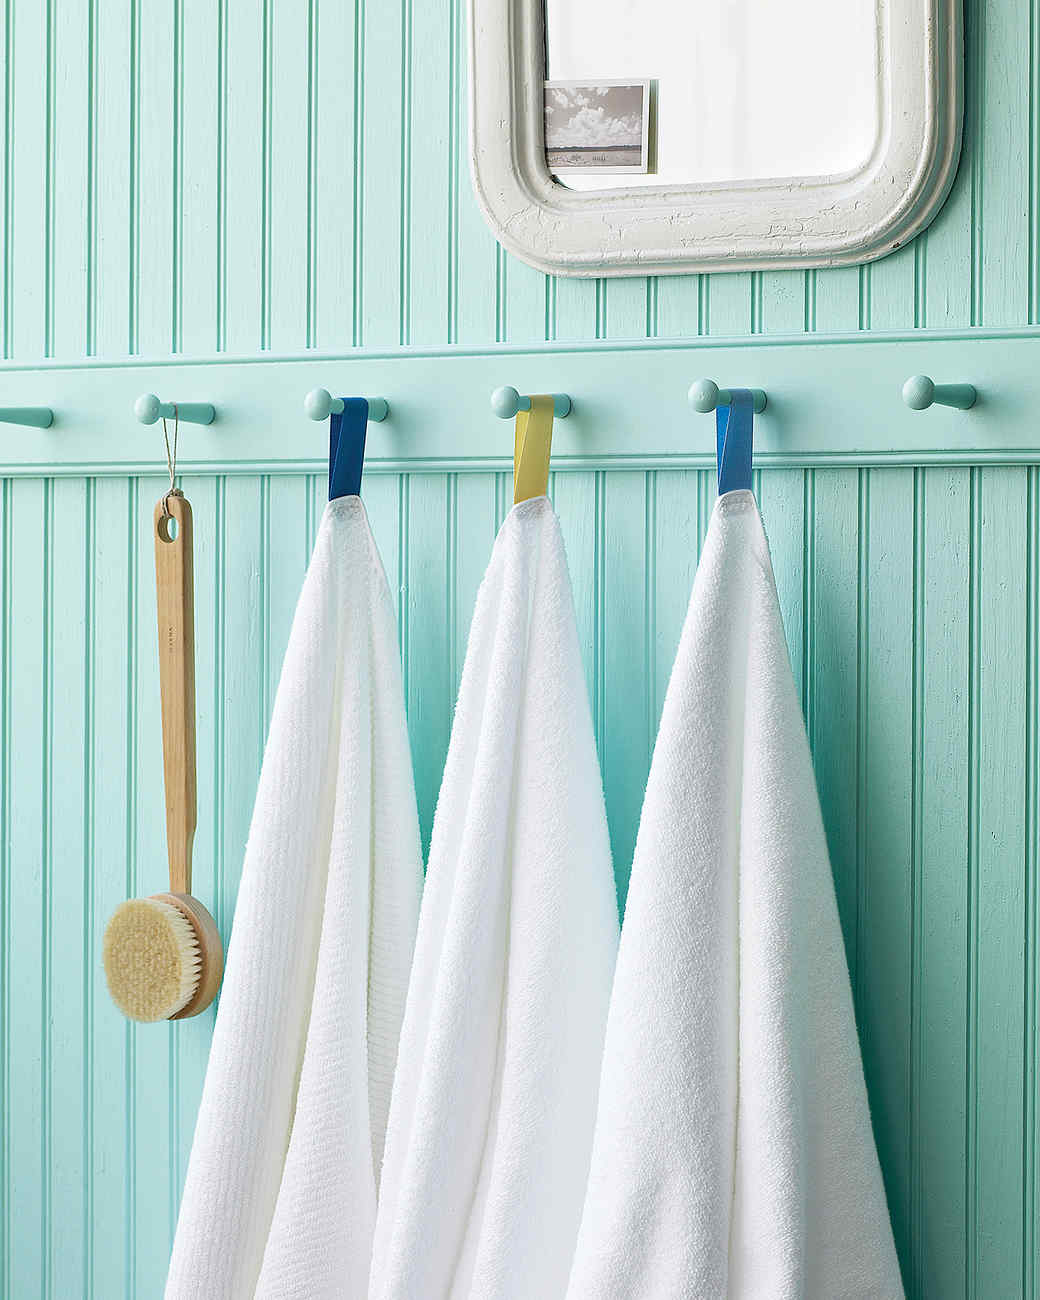 Displaying bathroom towels ideas - Displaying Bathroom Towels Ideas 25